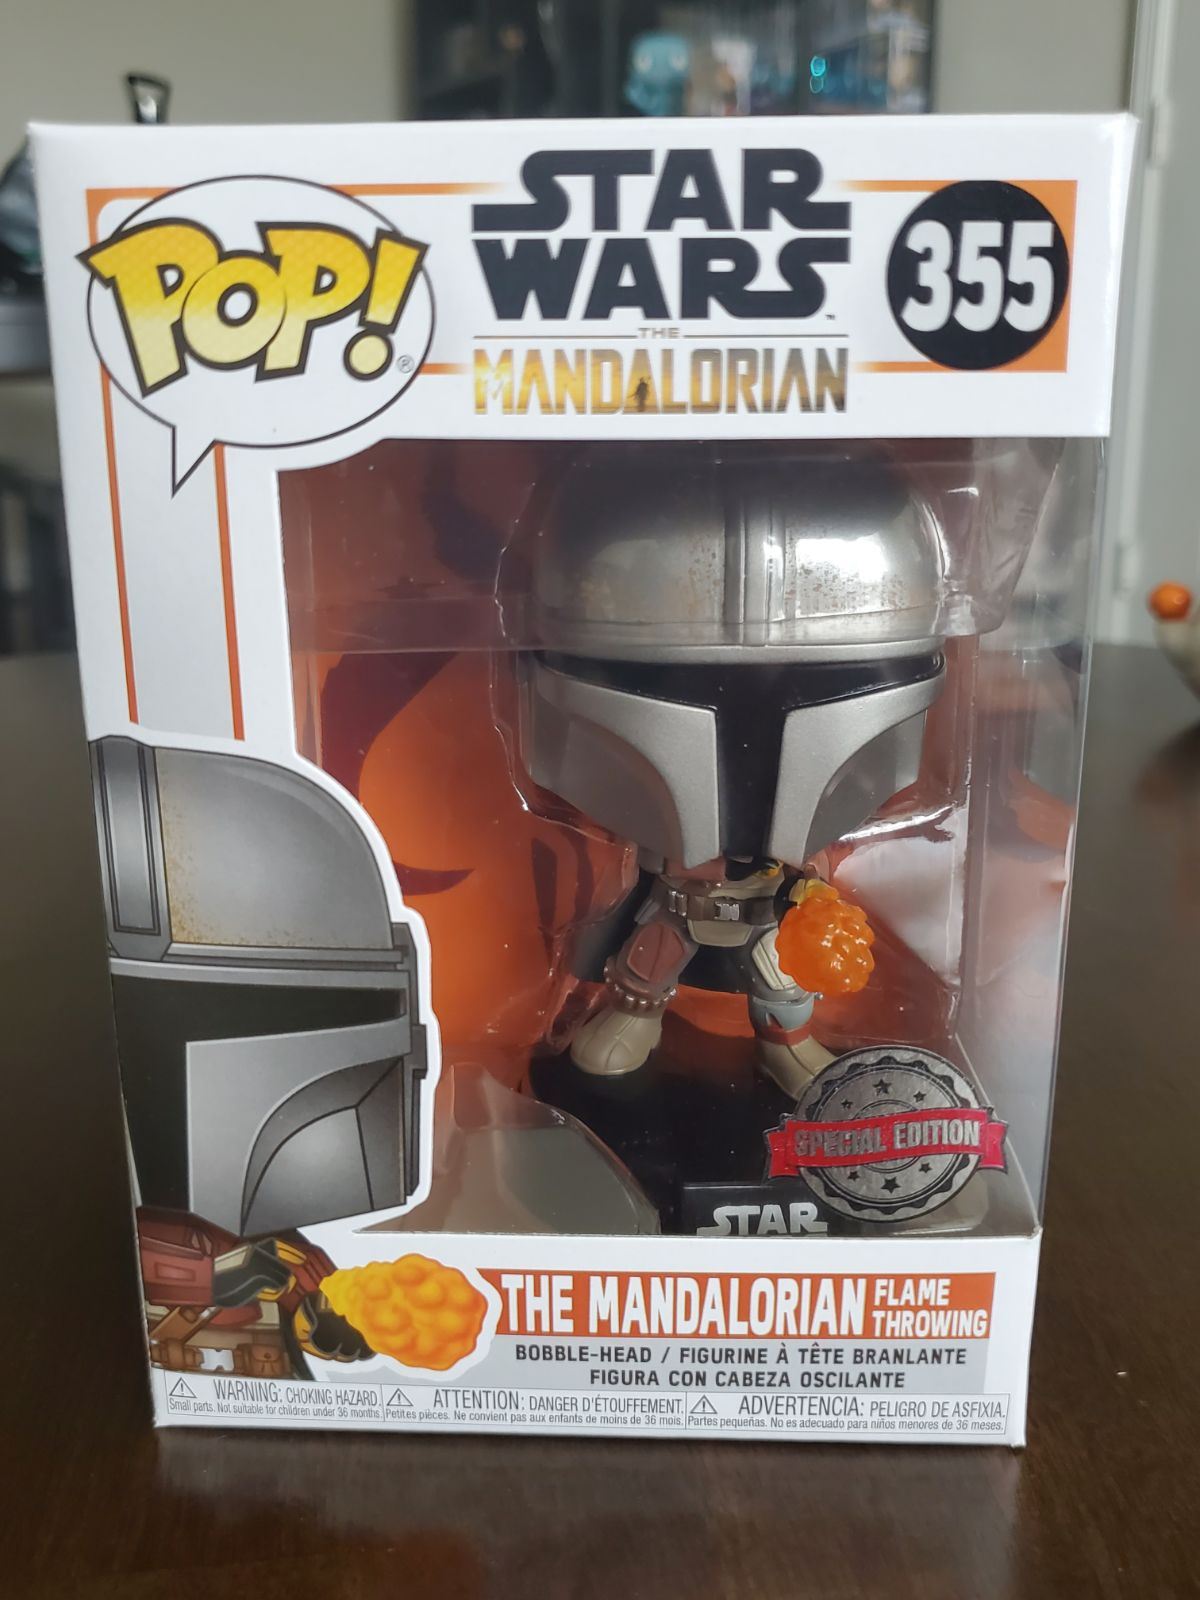 The Mandalorian Funko Pop